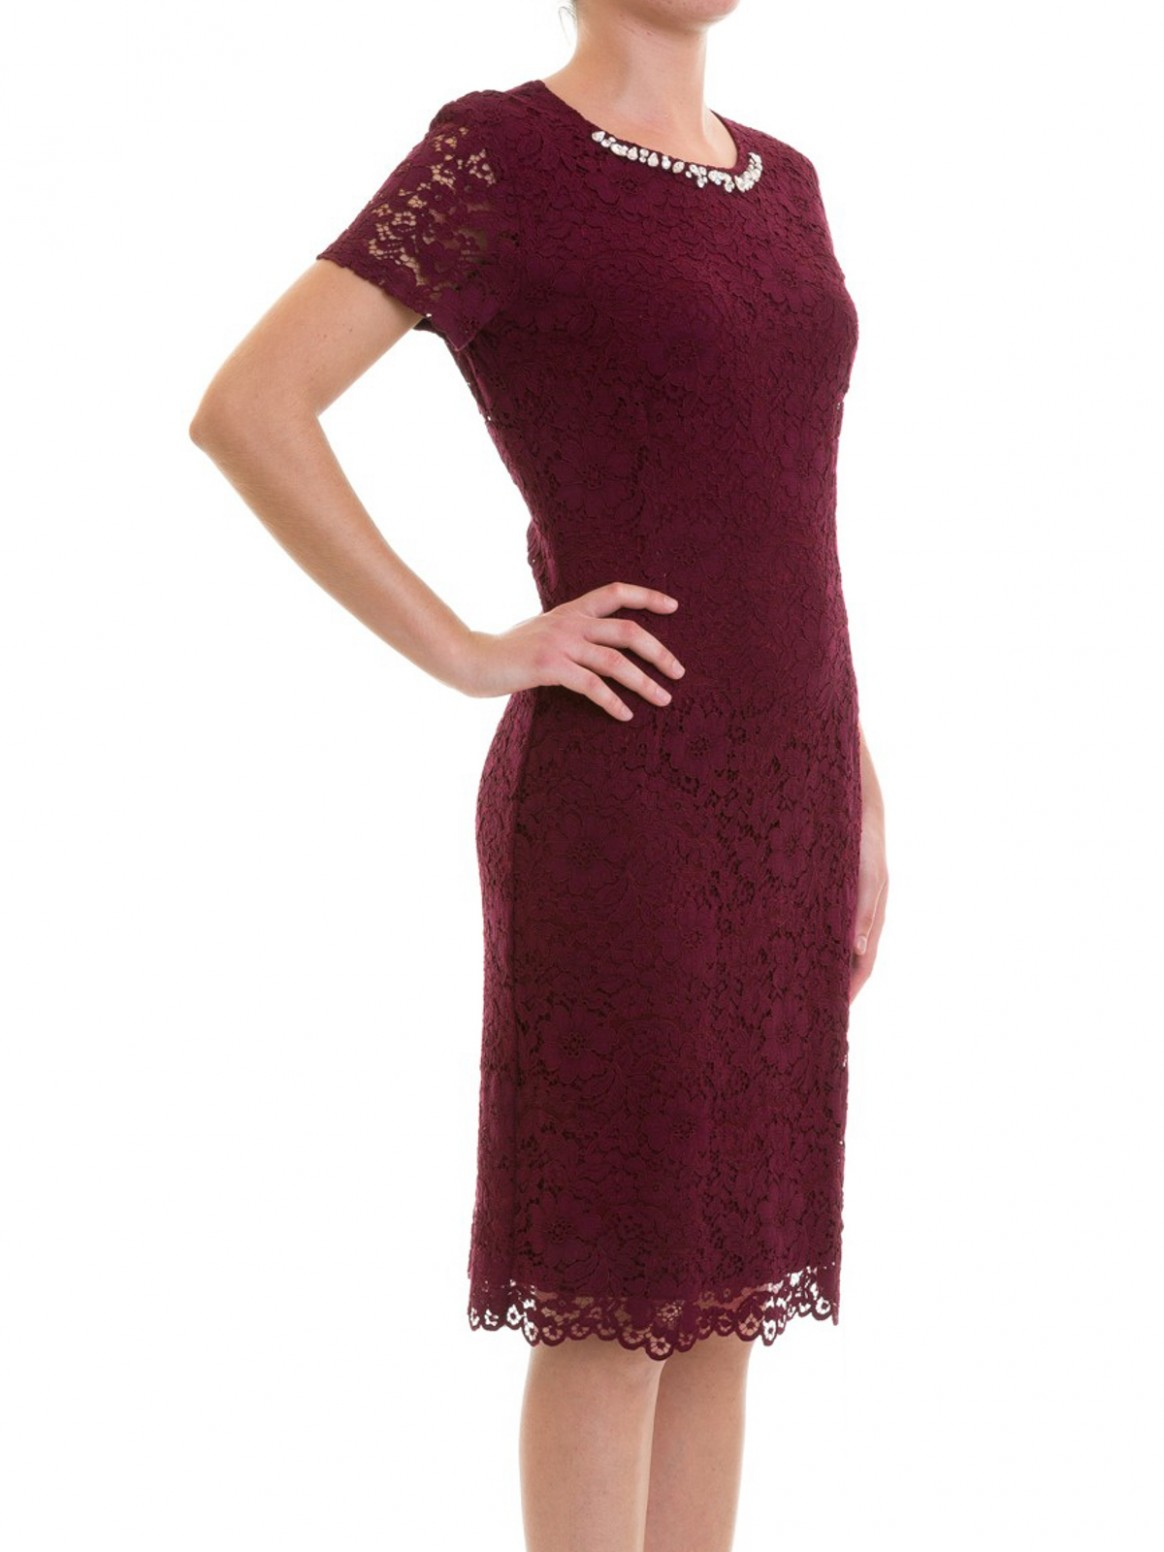 blugirl cocktailkleid bordeaux cocktailkleider 10 cocktailkleid bordeaux